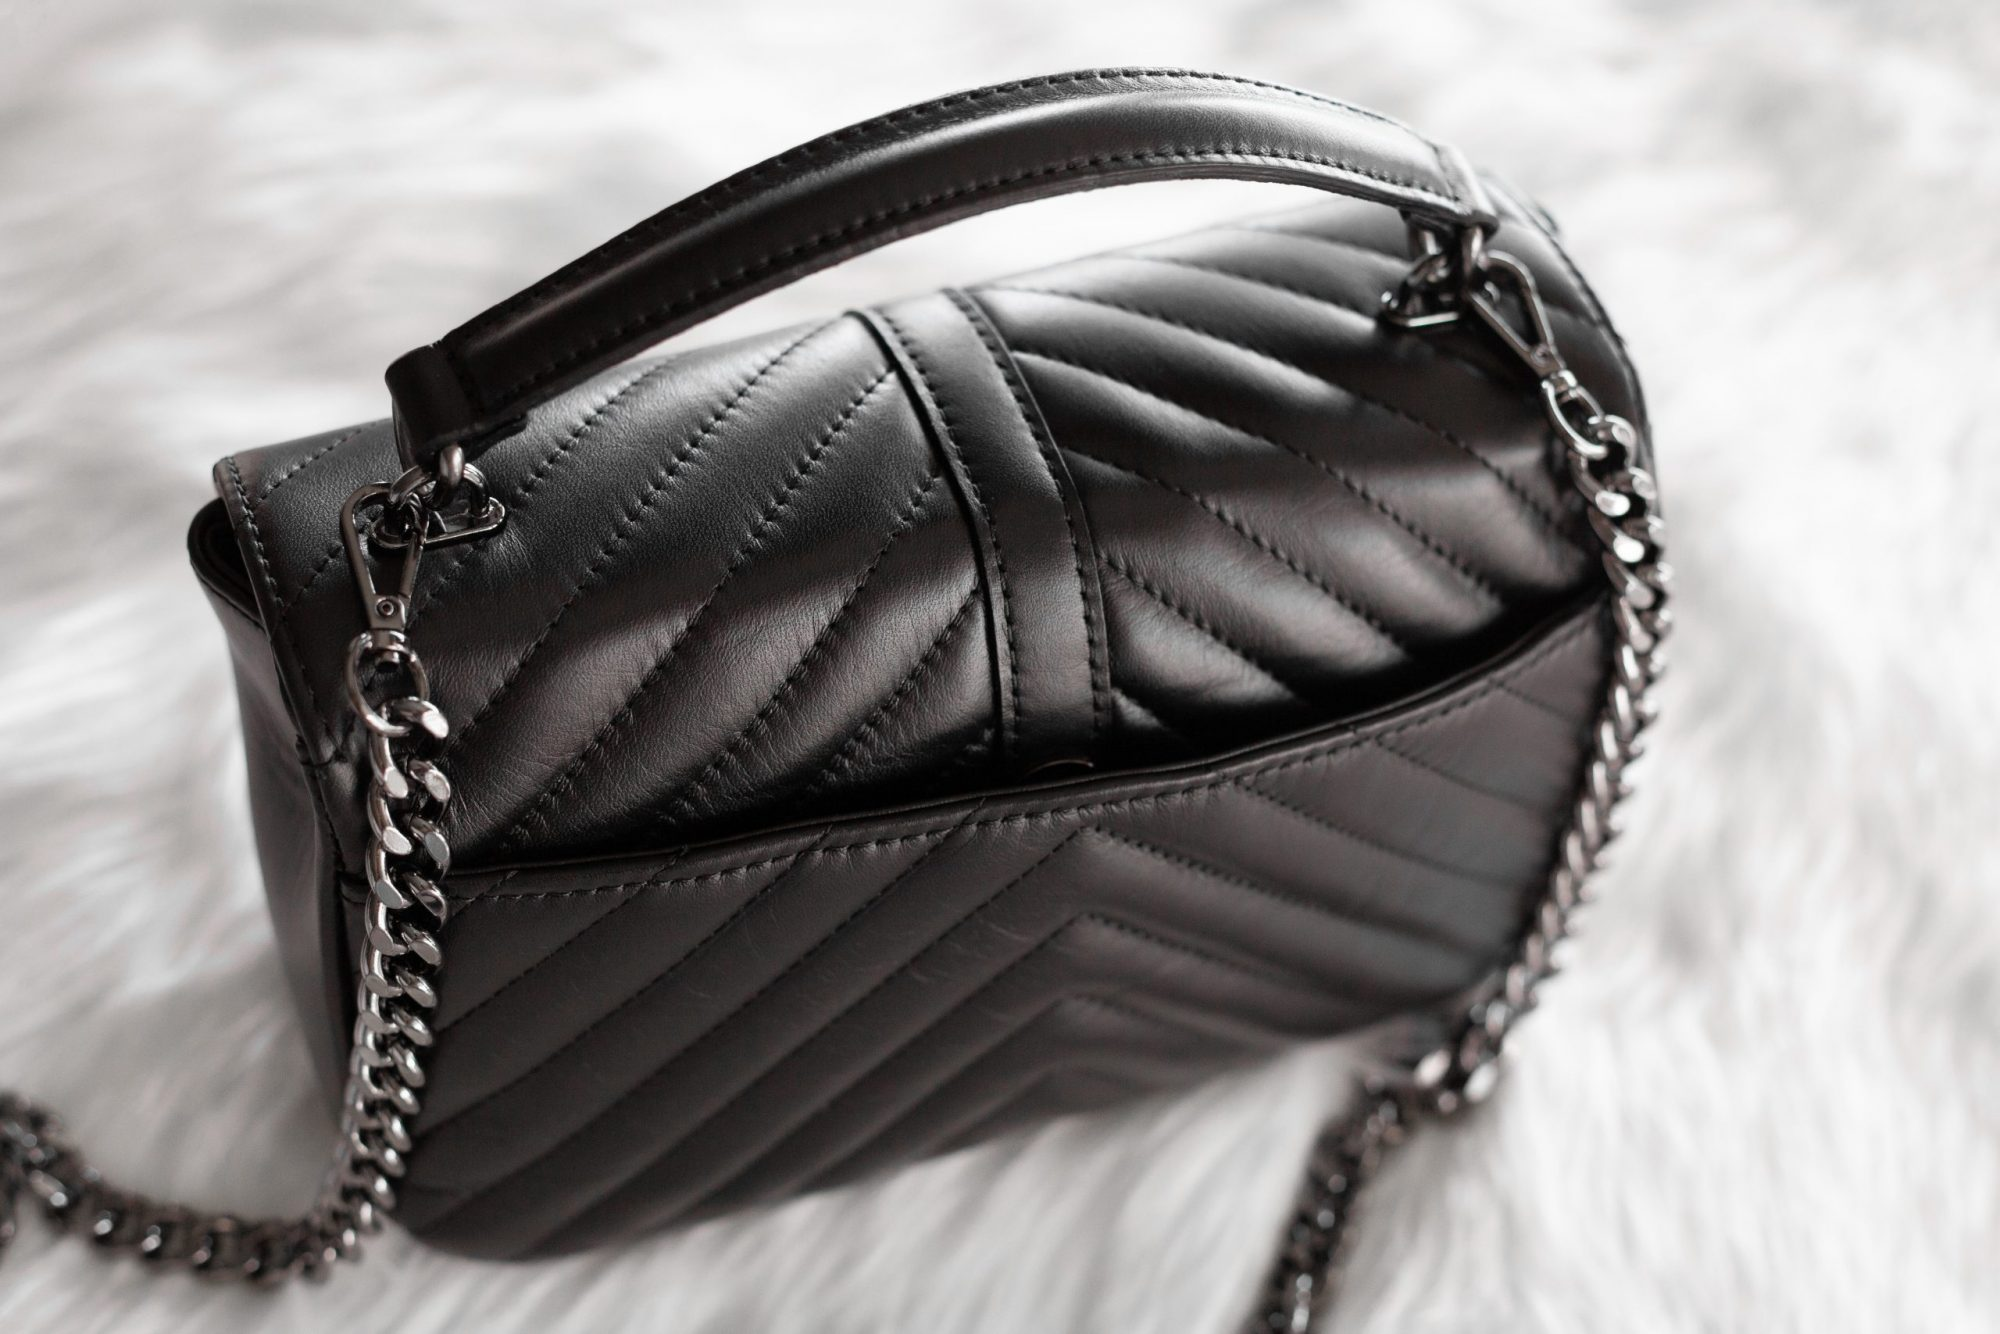 Black flap of Italian leather handbag by Fashion Drug